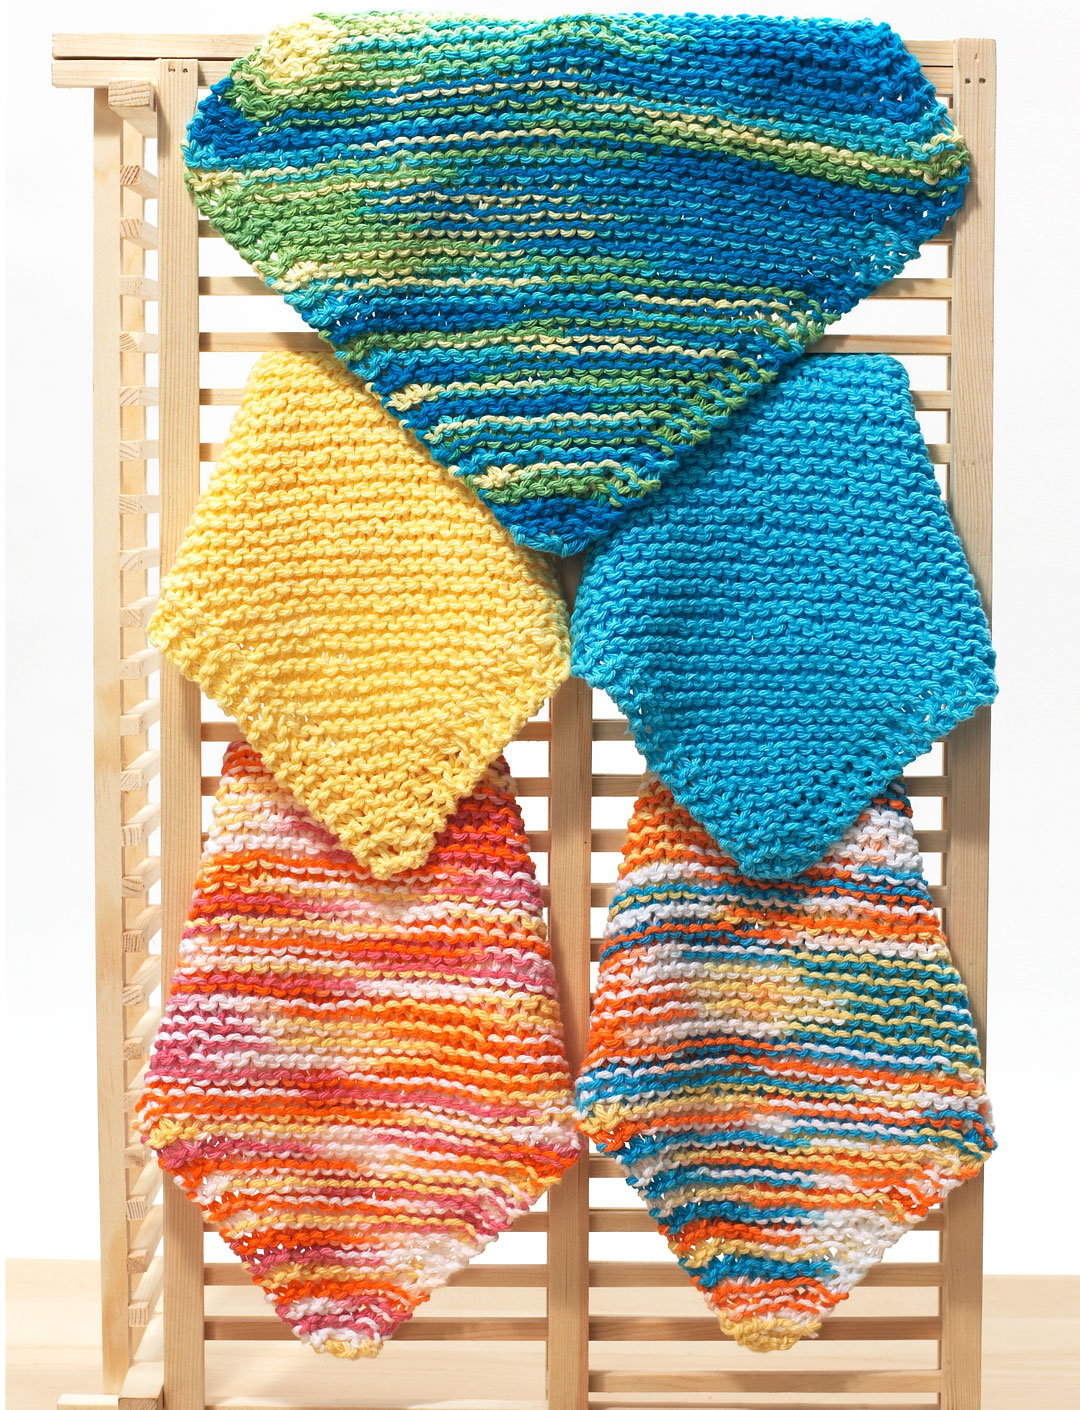 Knitting Dishcloths Easy : The knit dishcloth pattern collection every knitter needs